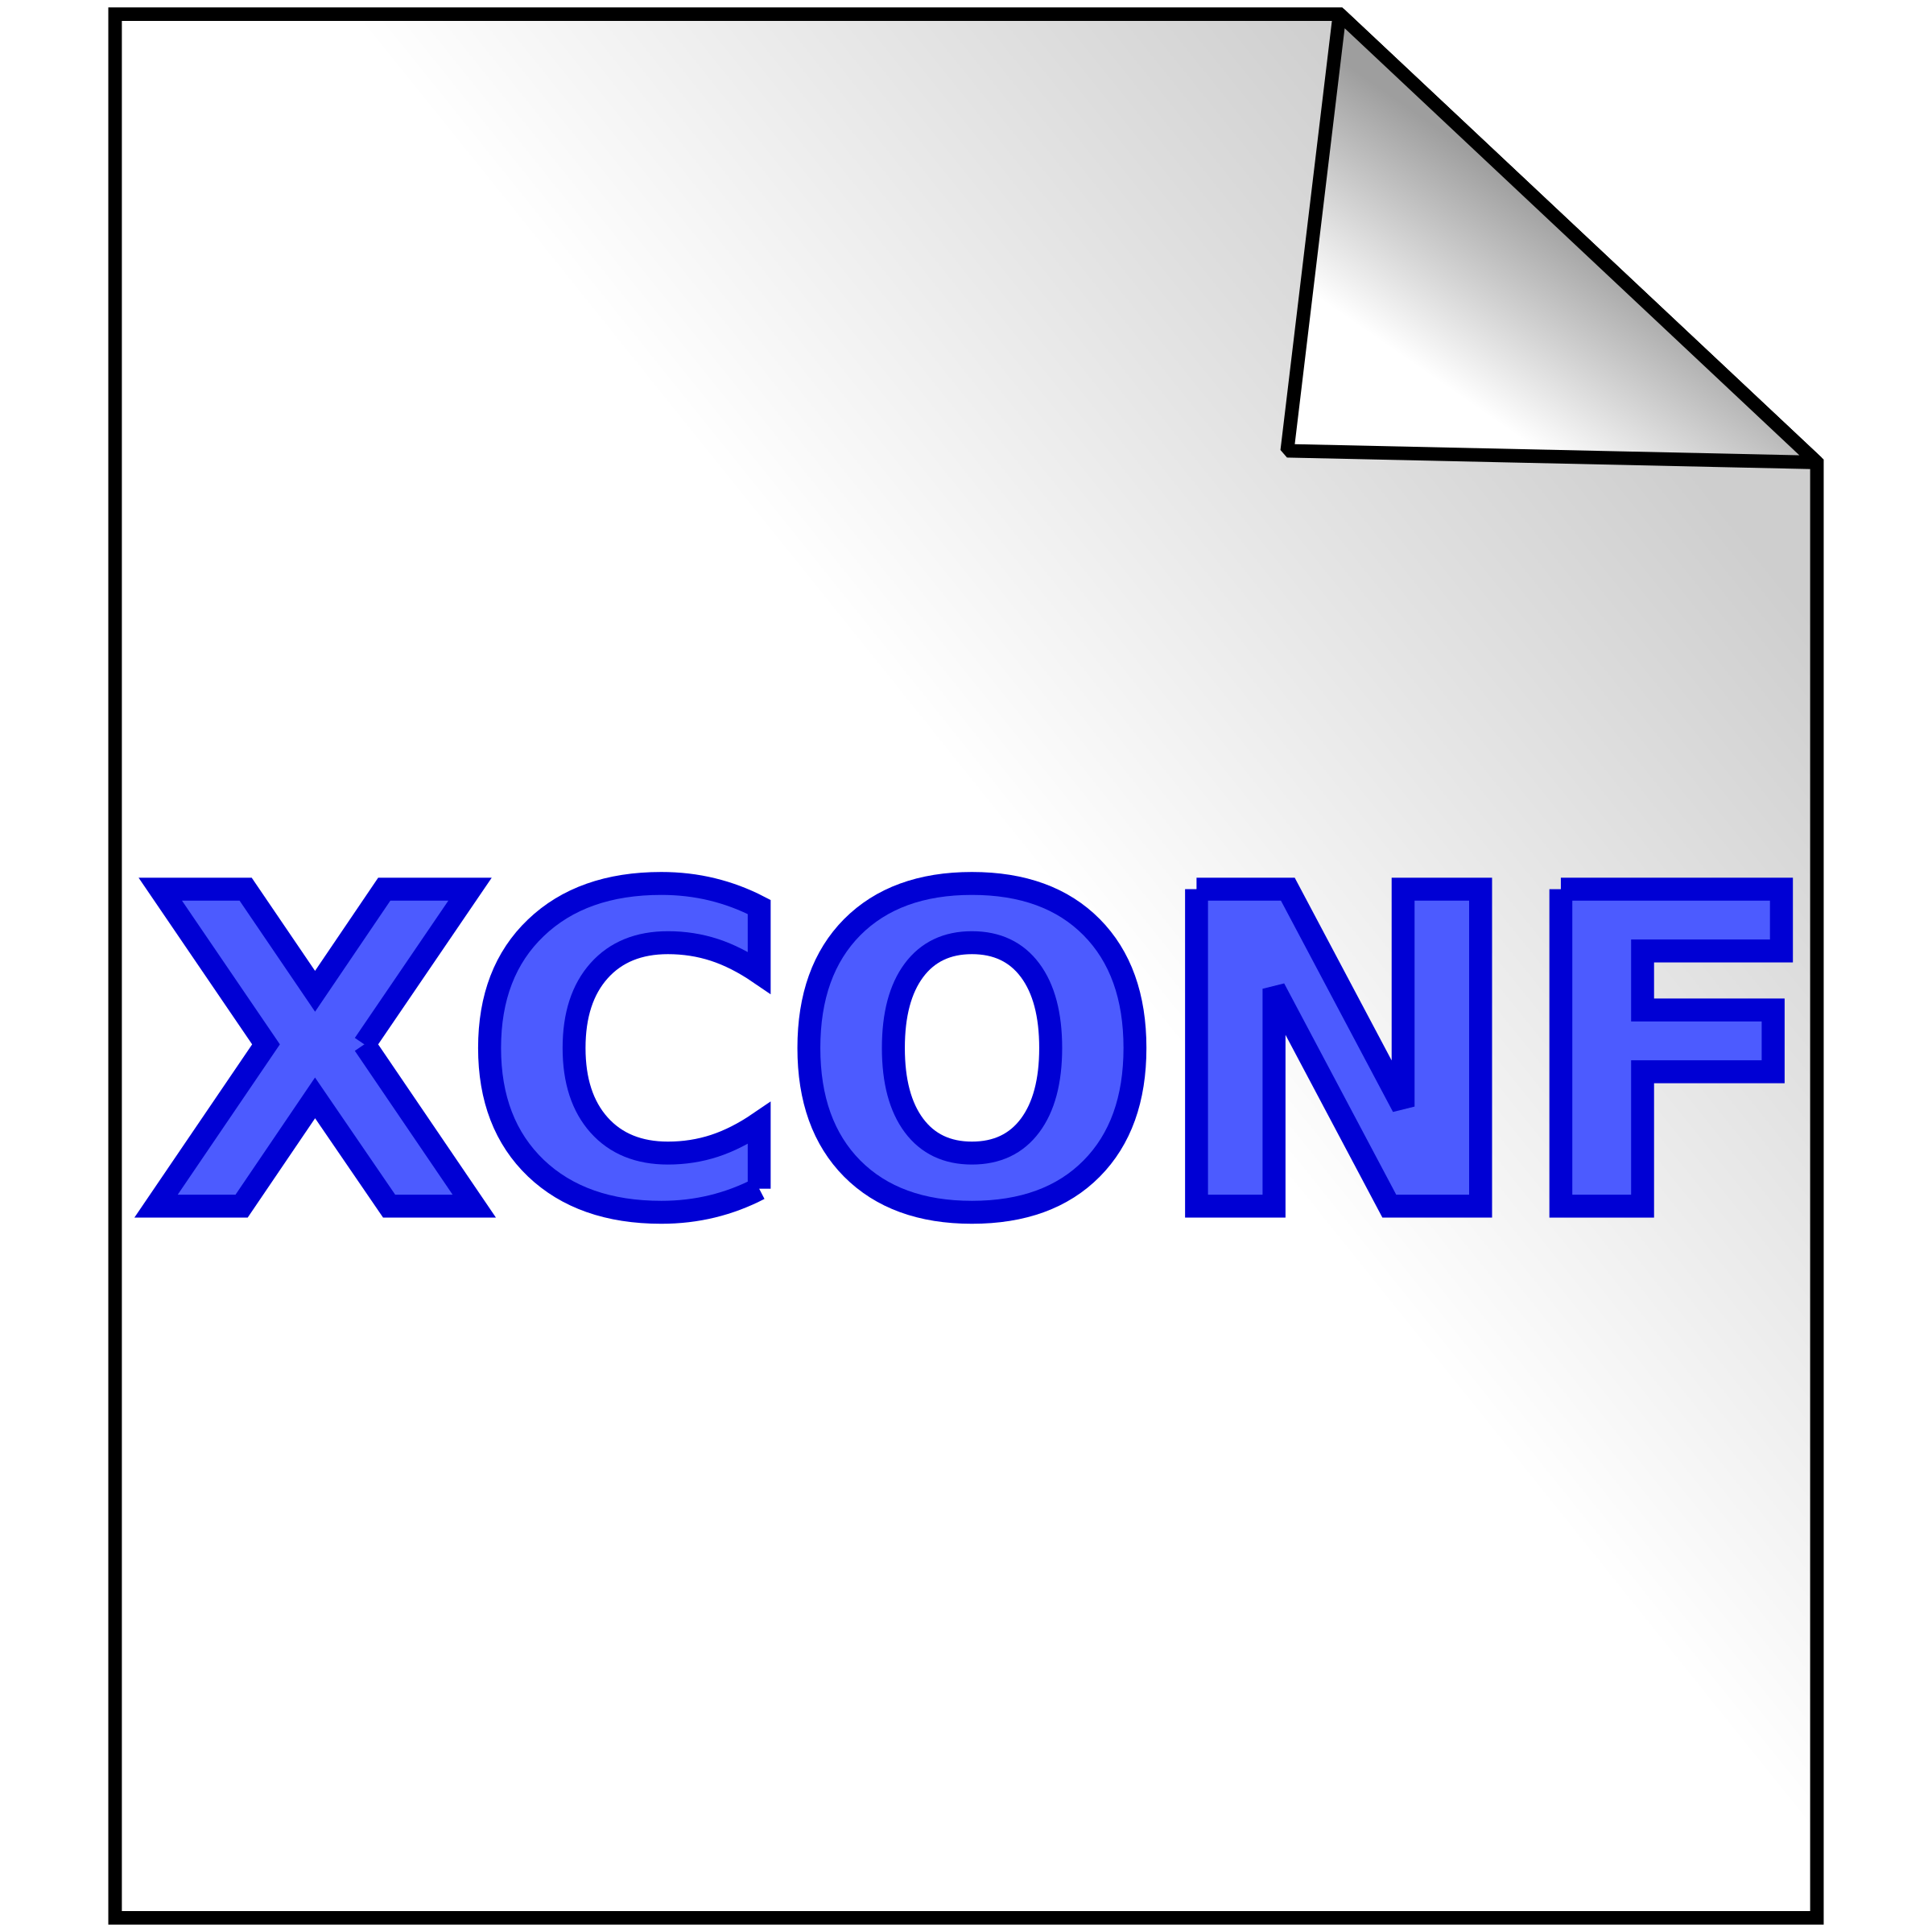 xconf file by computating